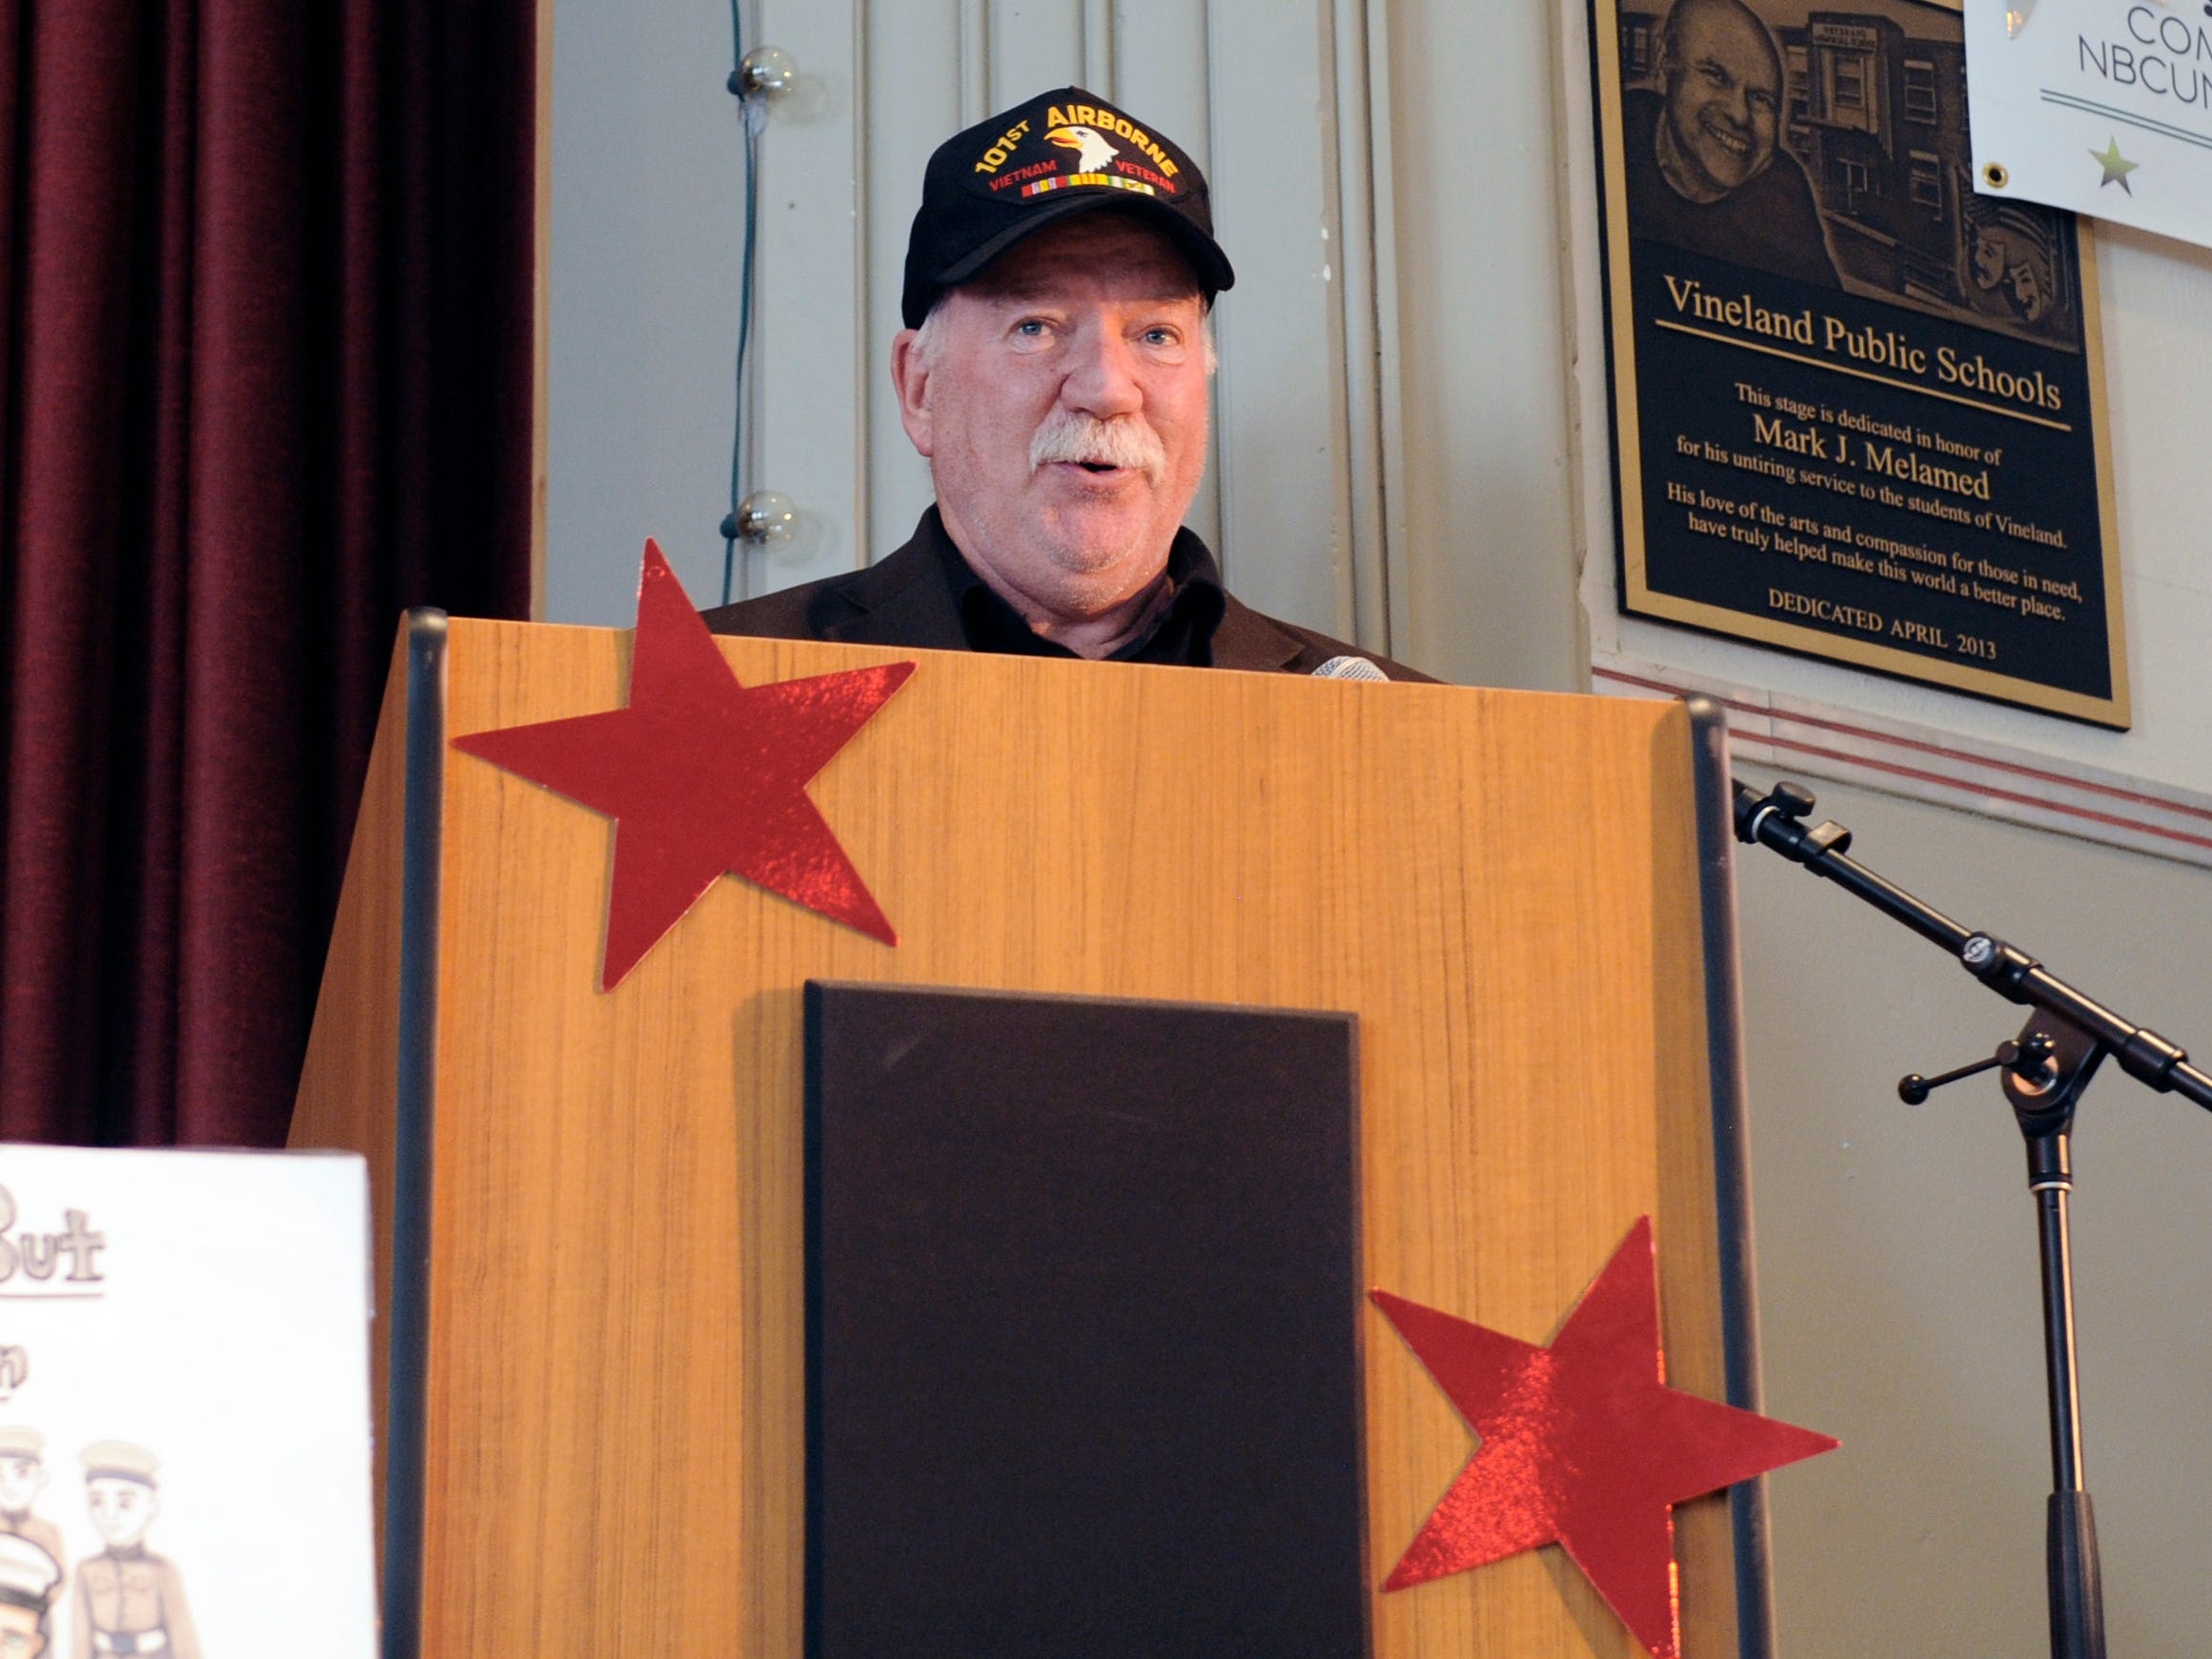 Vietnam Veteran and State Assemblyman Bruce Land speaks during a special assembly honoring heroes at Veterans Memorial School on Wednesday, November 14, 2018.